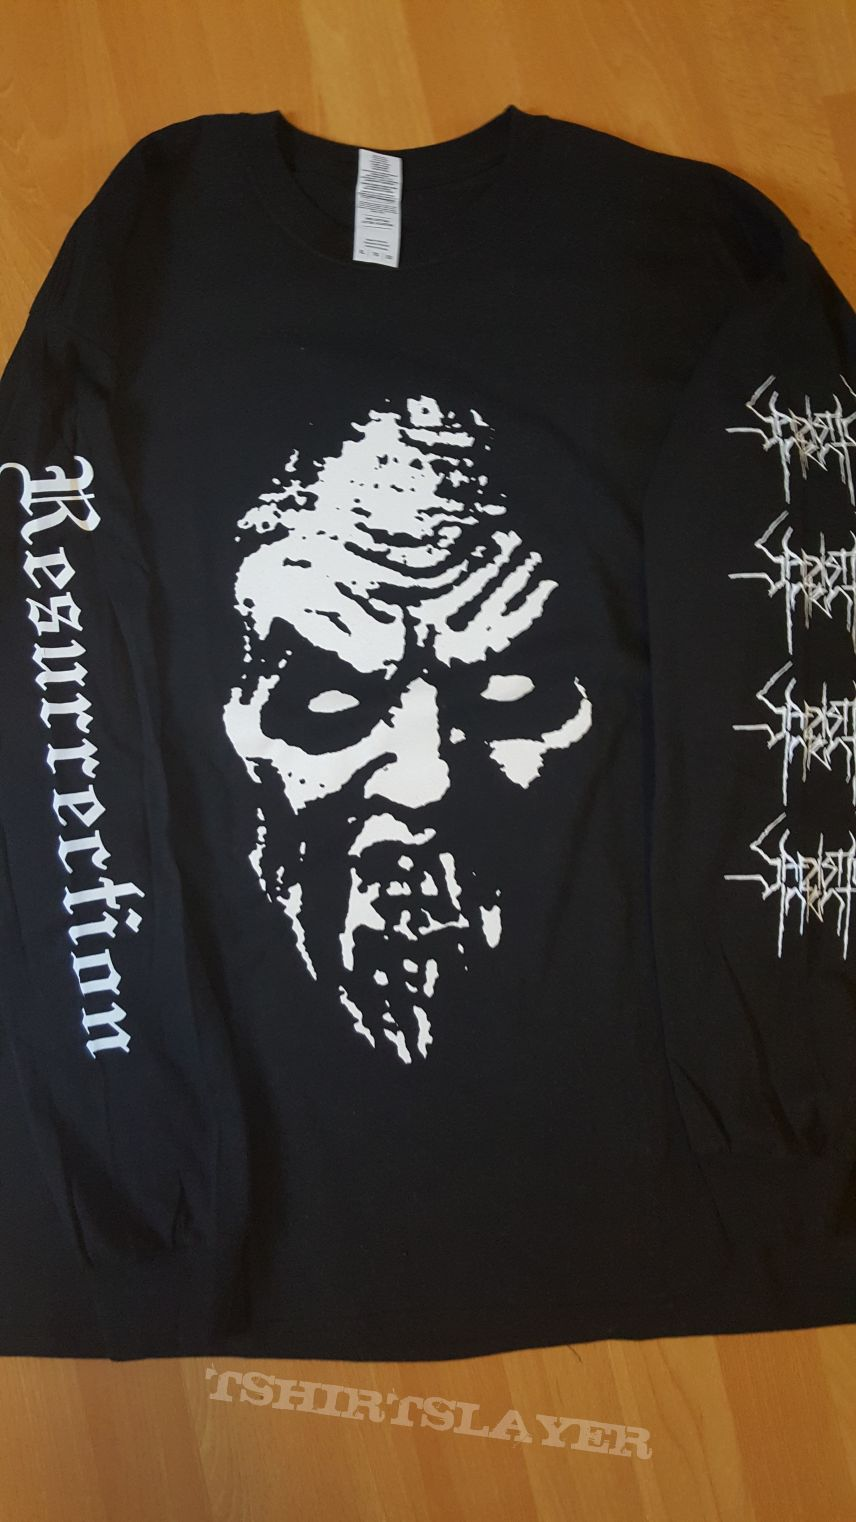 Sadistic Intent - Resurrection LS